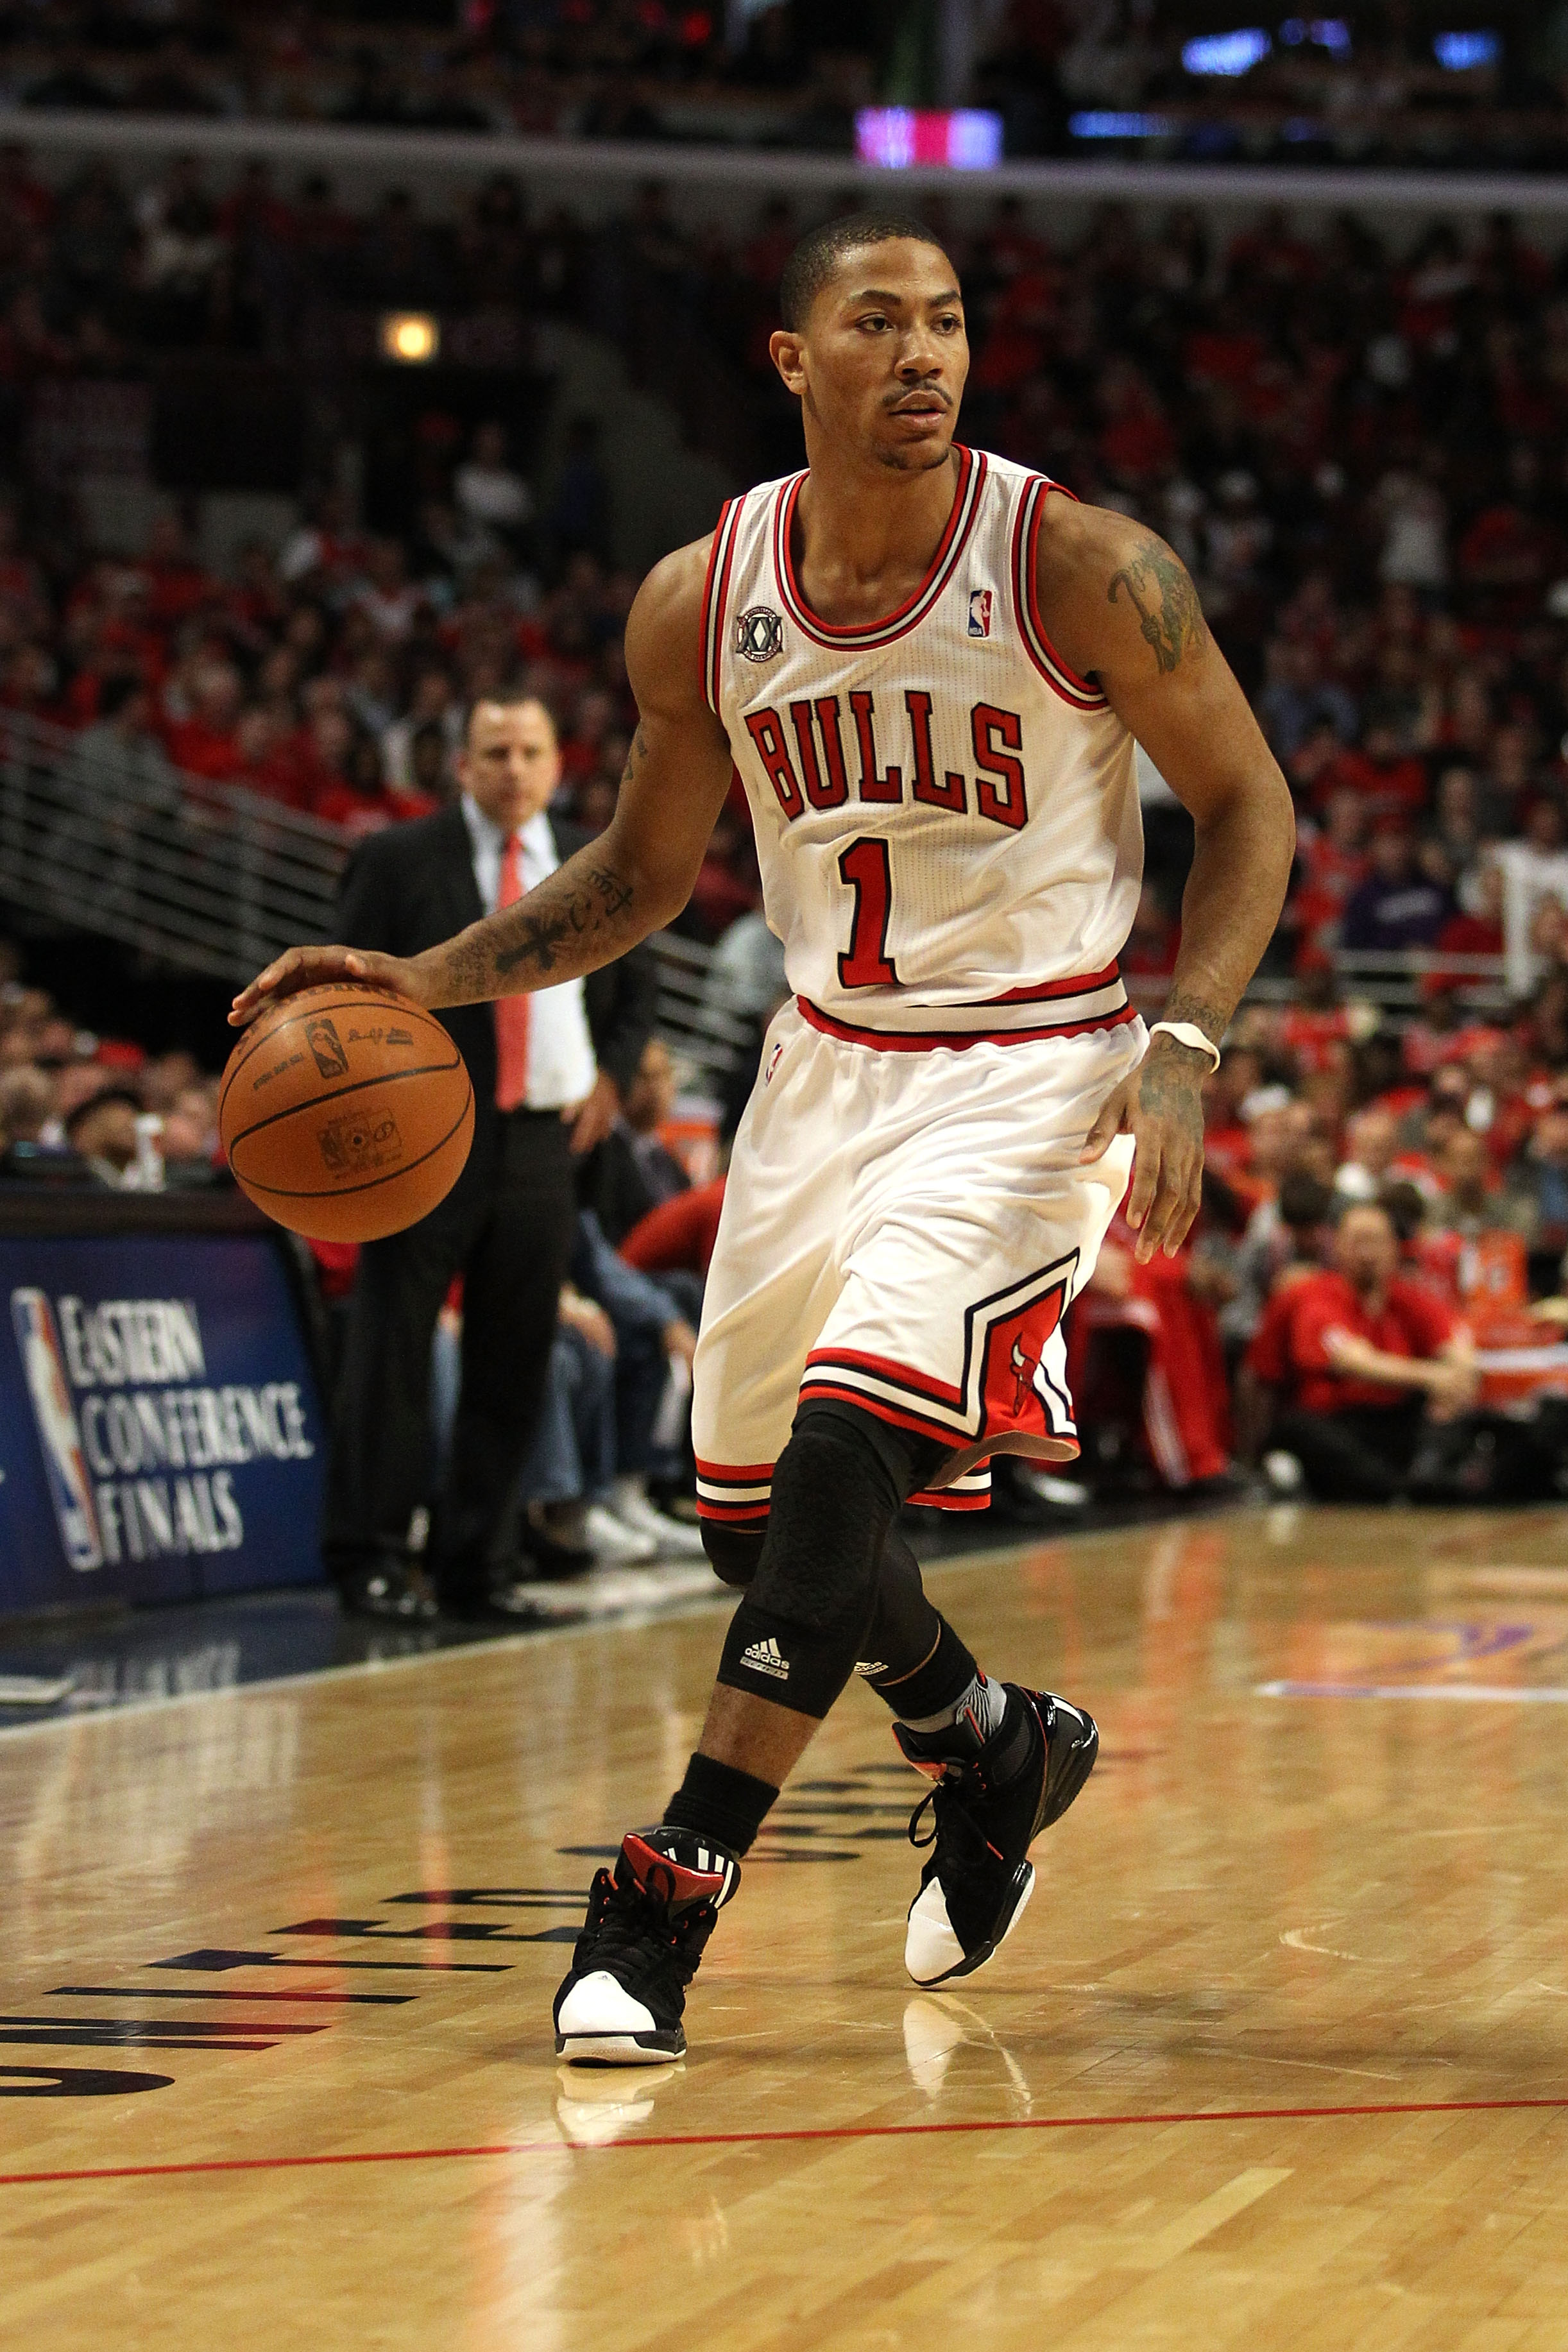 CHICAGO, IL - MAY 15:  Derrick Rose #1 of the Chicago Bulls looks to pass against the Miami Heat in Game One of the Eastern Conference Finals during the 2011 NBA Playoffs on May 15, 2011 at the United Center in Chicago, Illinois. The Bulls won 103-82. NOT